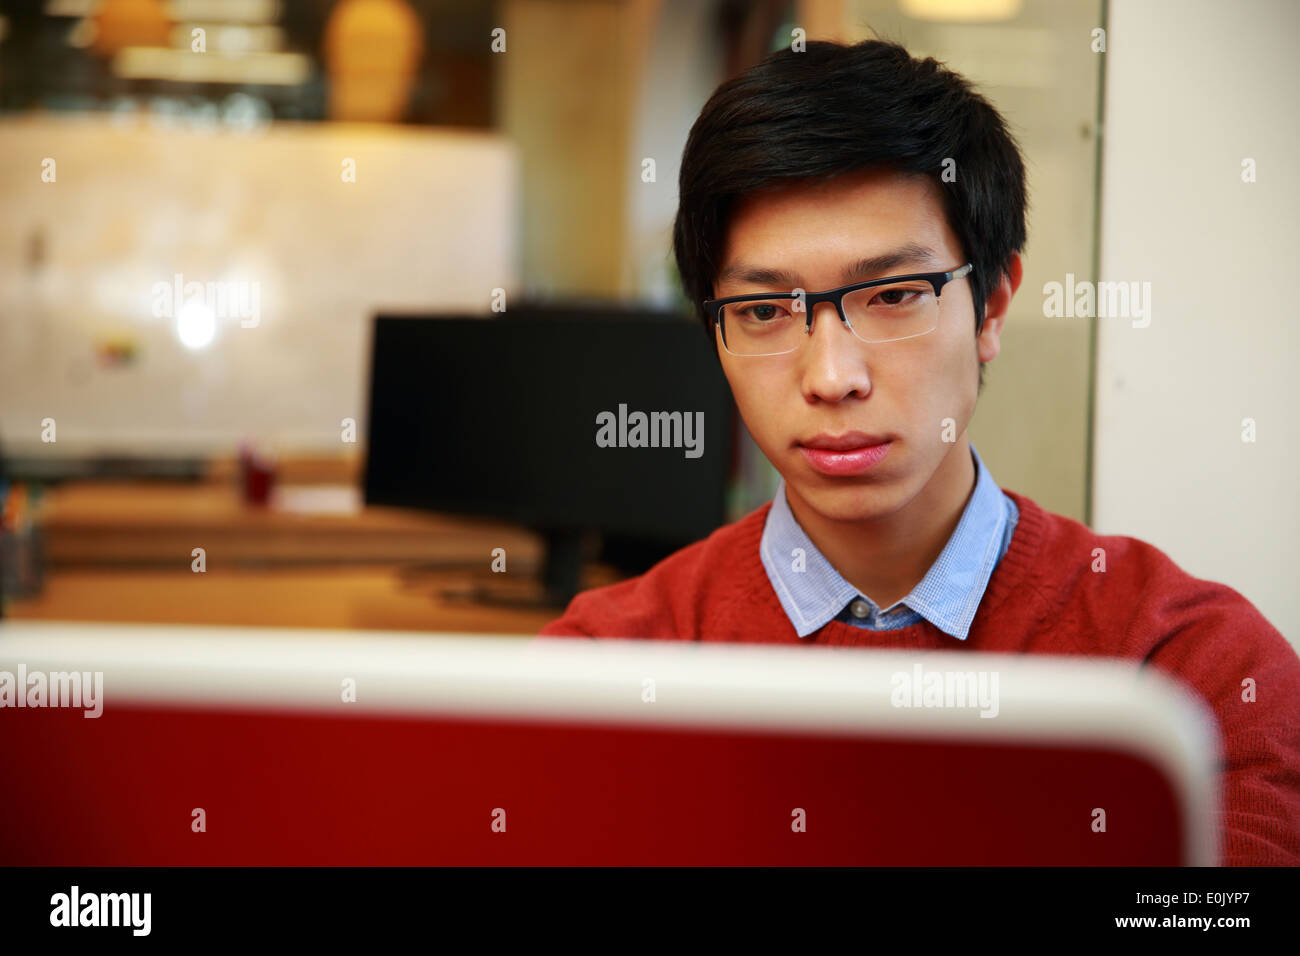 Young asian man in glasses working on laptop - Stock Image